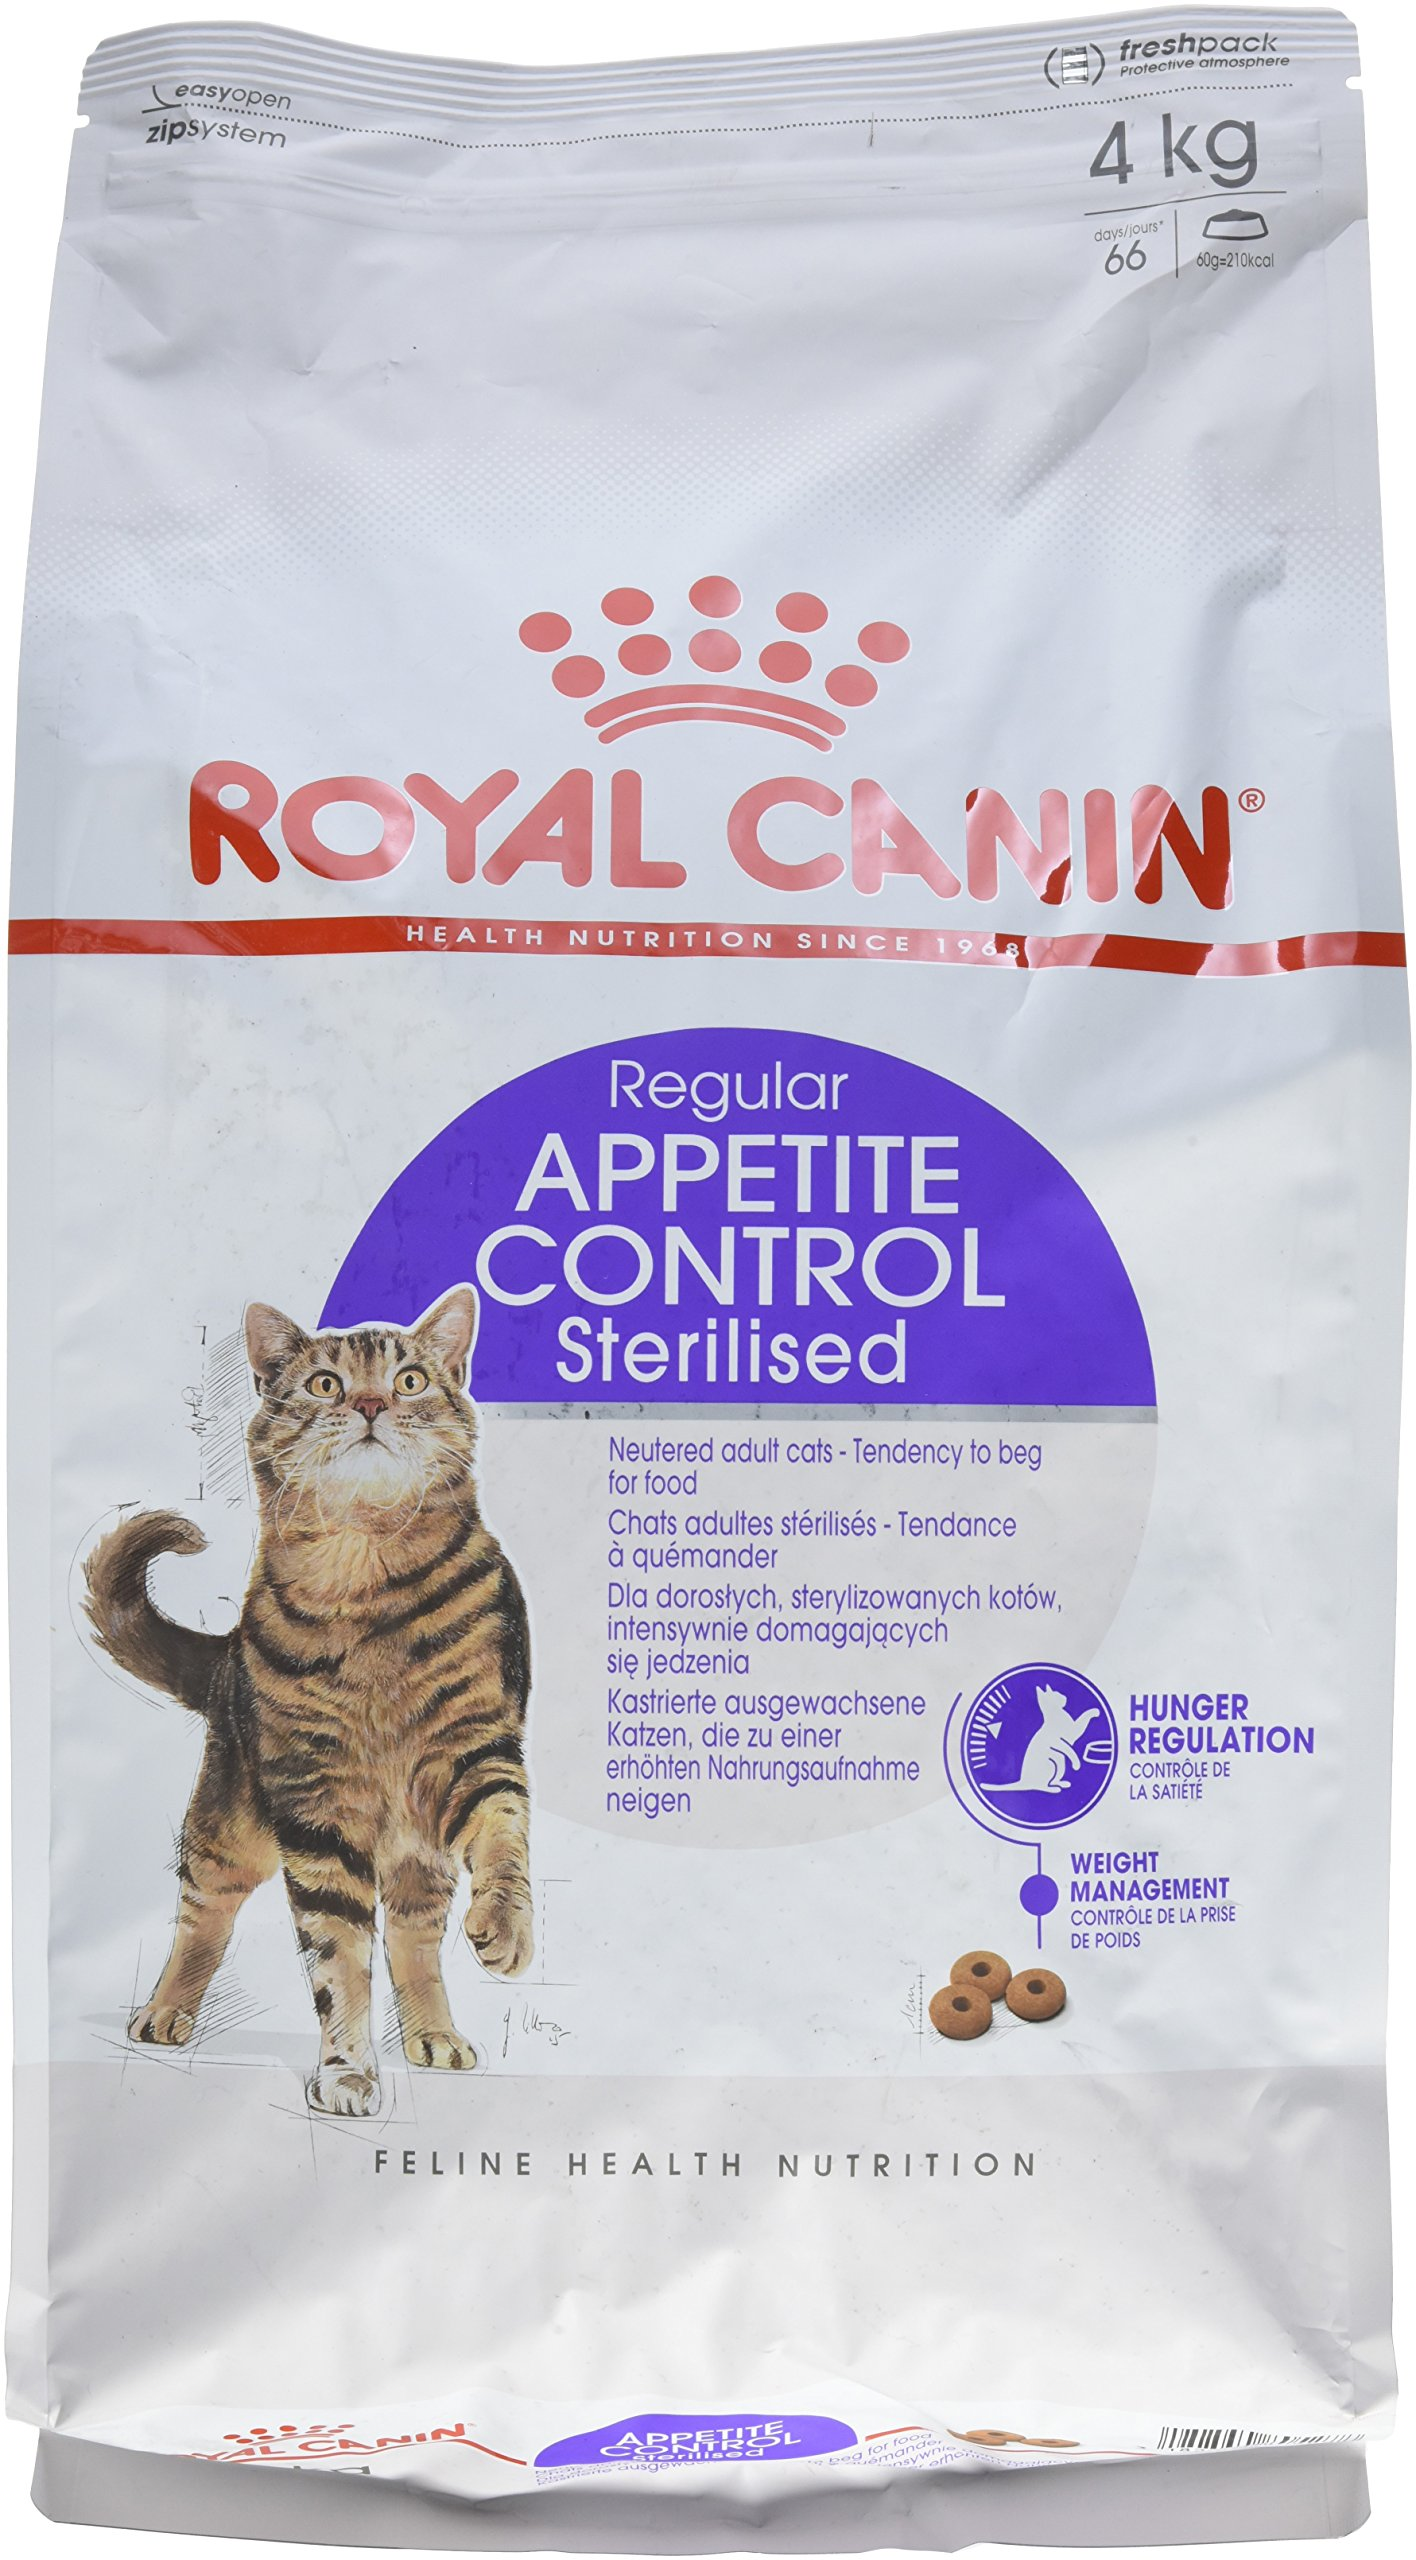 Royal Canin C-584634 Sterilised Appetite Control - 4 Kg product image